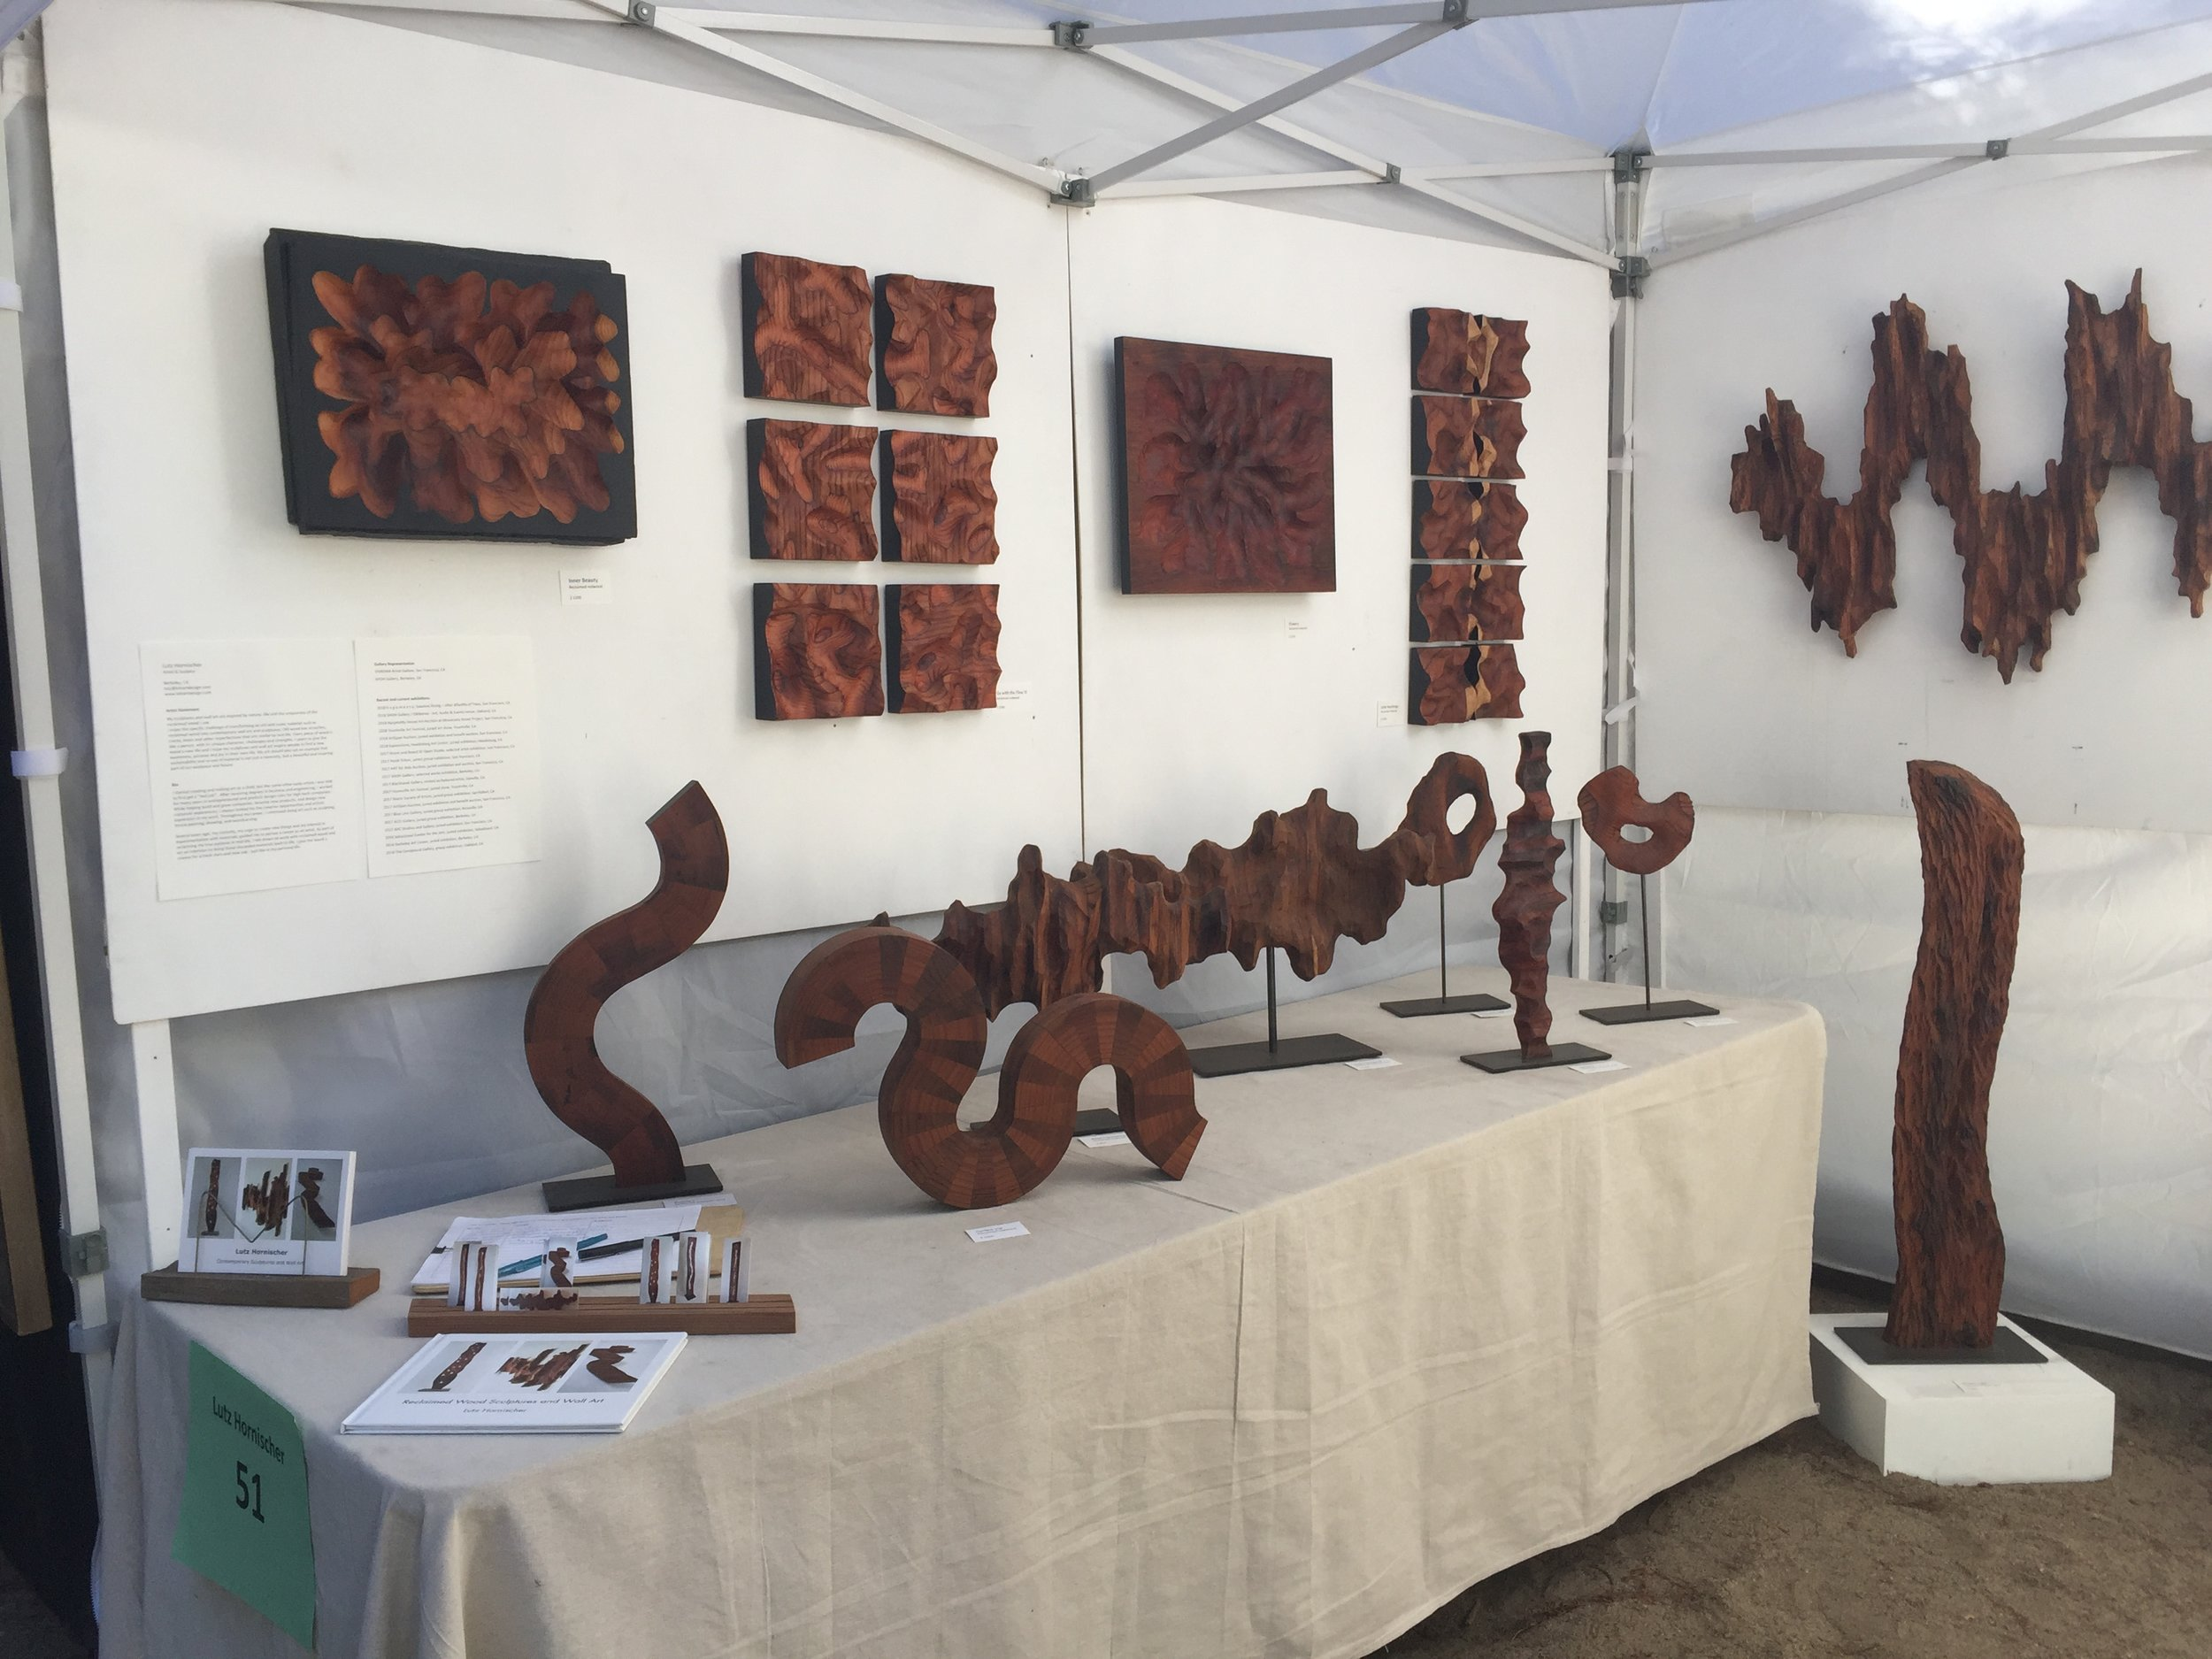 Mill Valley Art Festival - sculptures and wall art by Lutz Hornischer